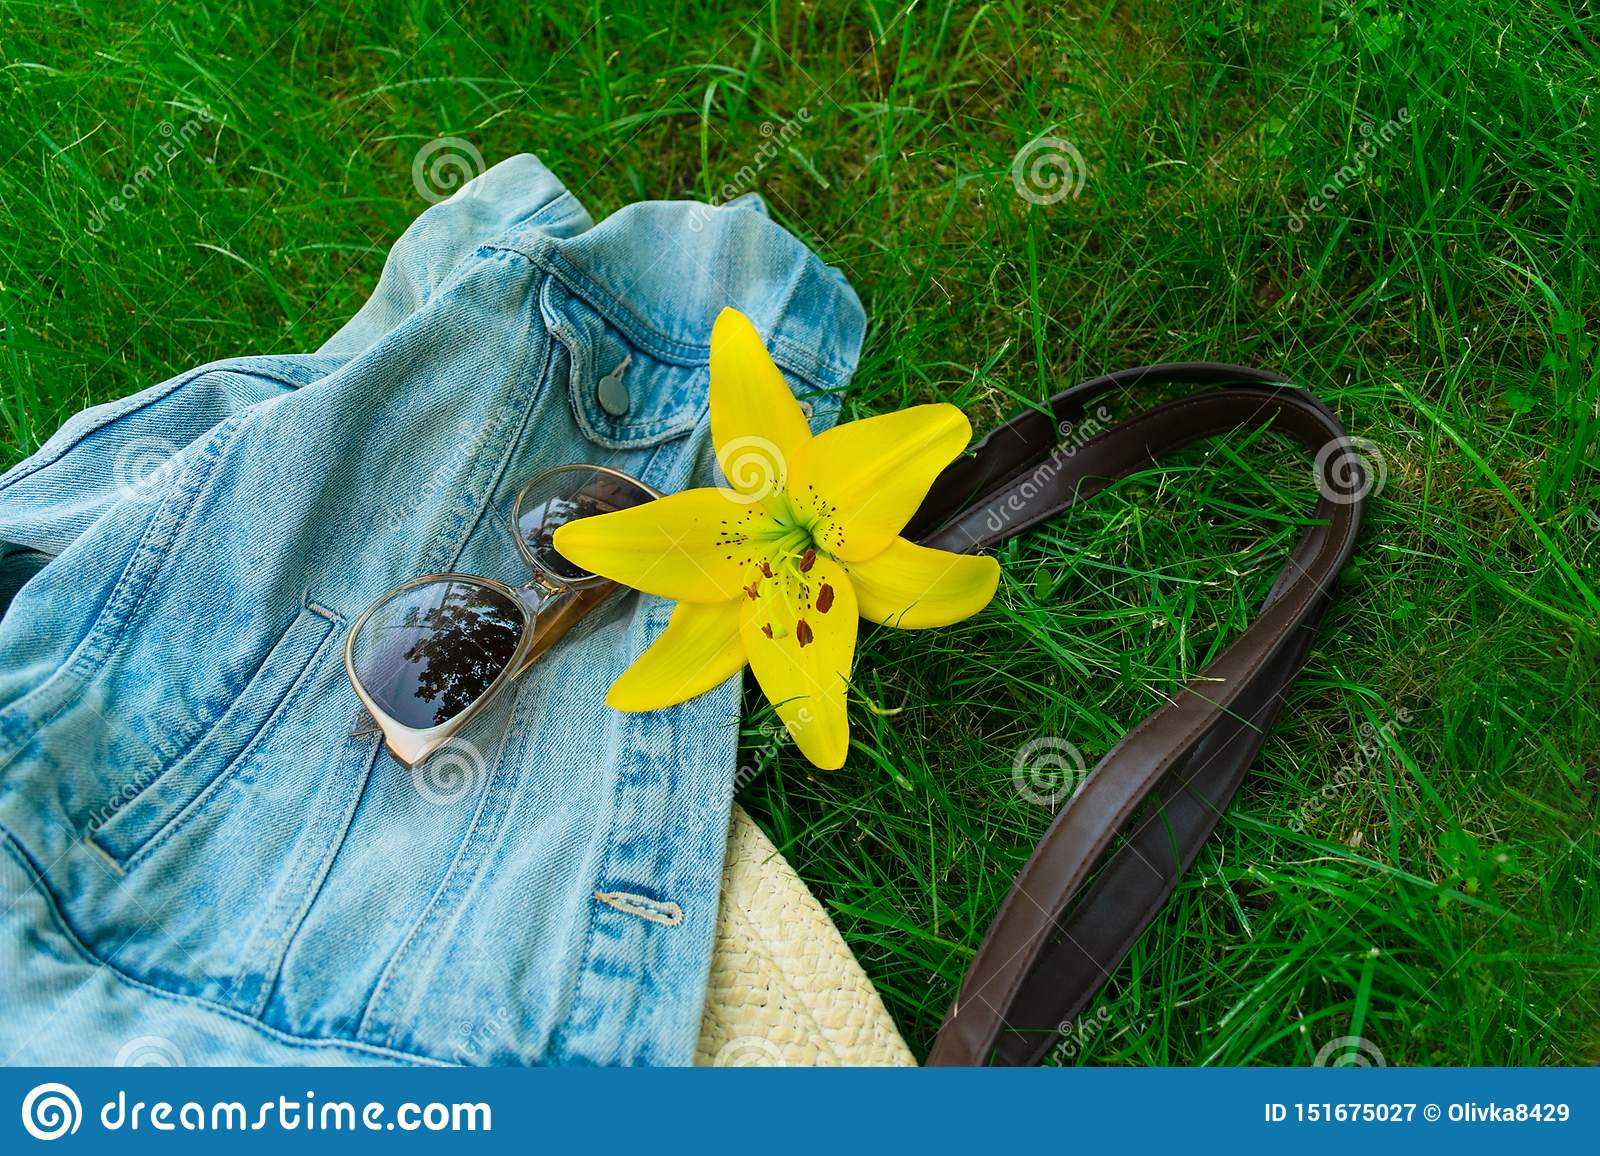 A flower of a yellow lily sunglasses and a summer bag on a green grass. Concept of summer walks.